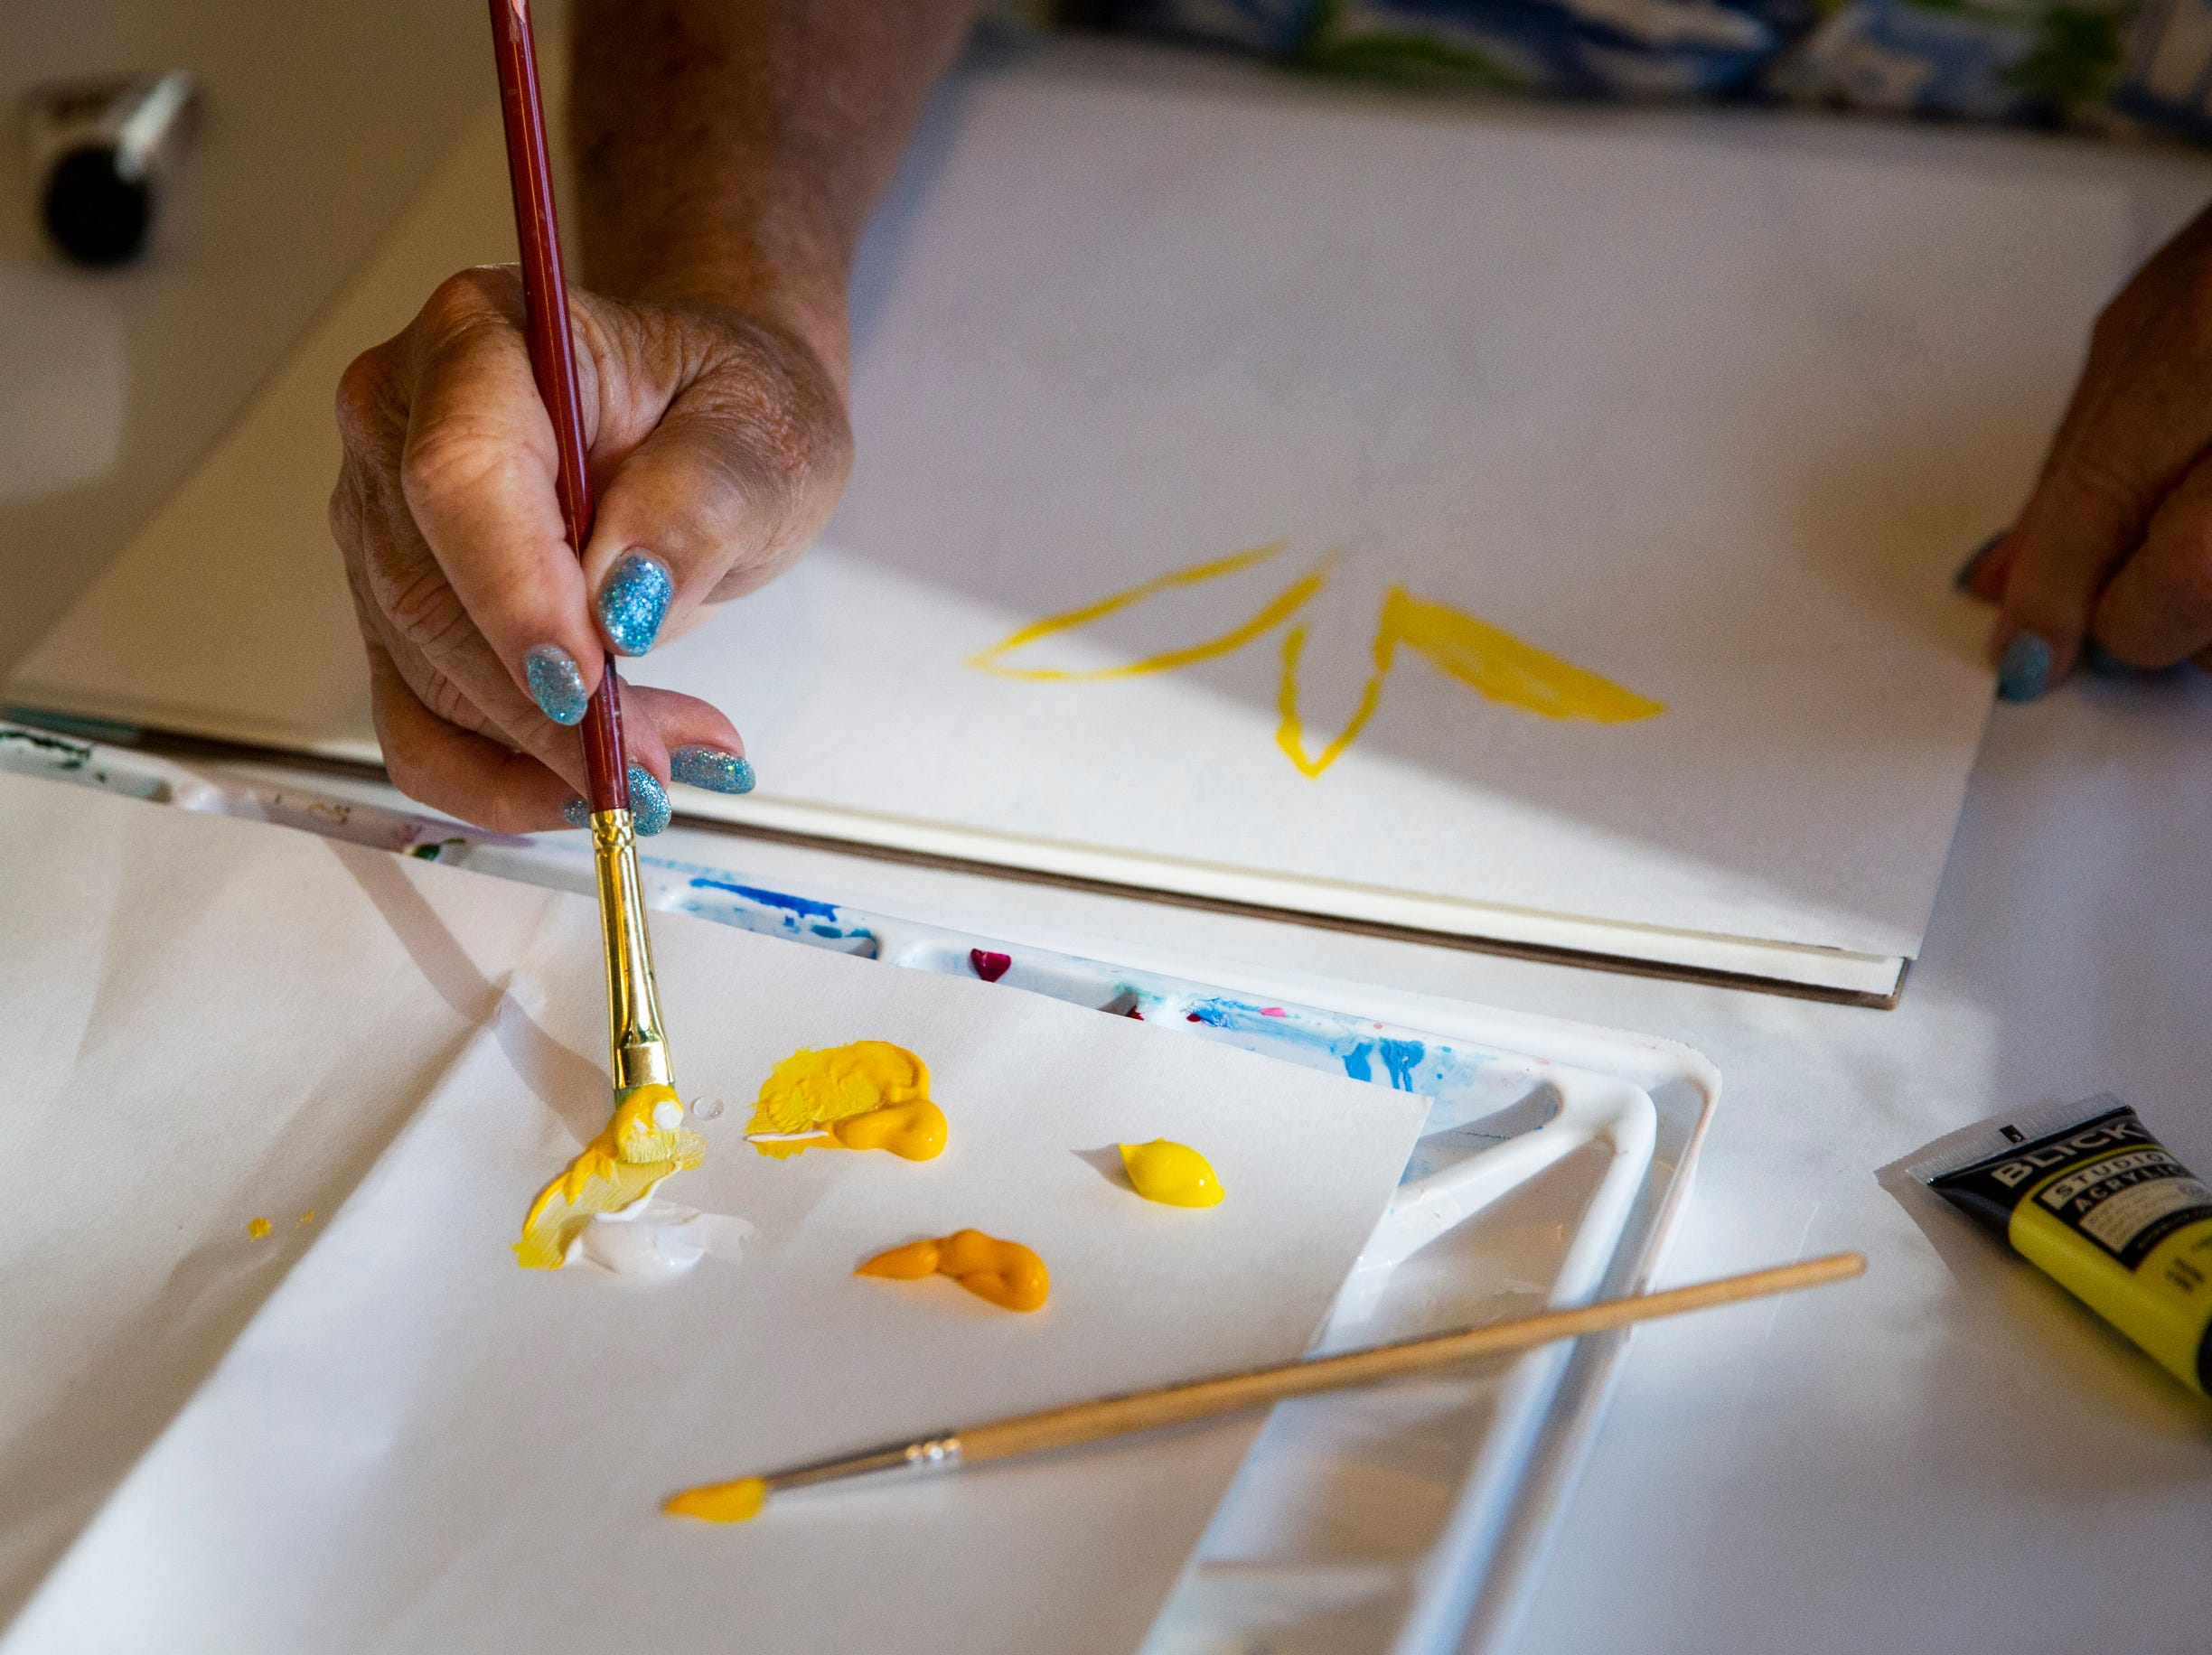 Barbara Richardson starts a painting during an oil and acrylic painting class at the Naples Art Association in Naples on Wednesday, March 27, 2019. Richardson says she has taken almost a dozen classes through the Naples Art Association over the past few years.